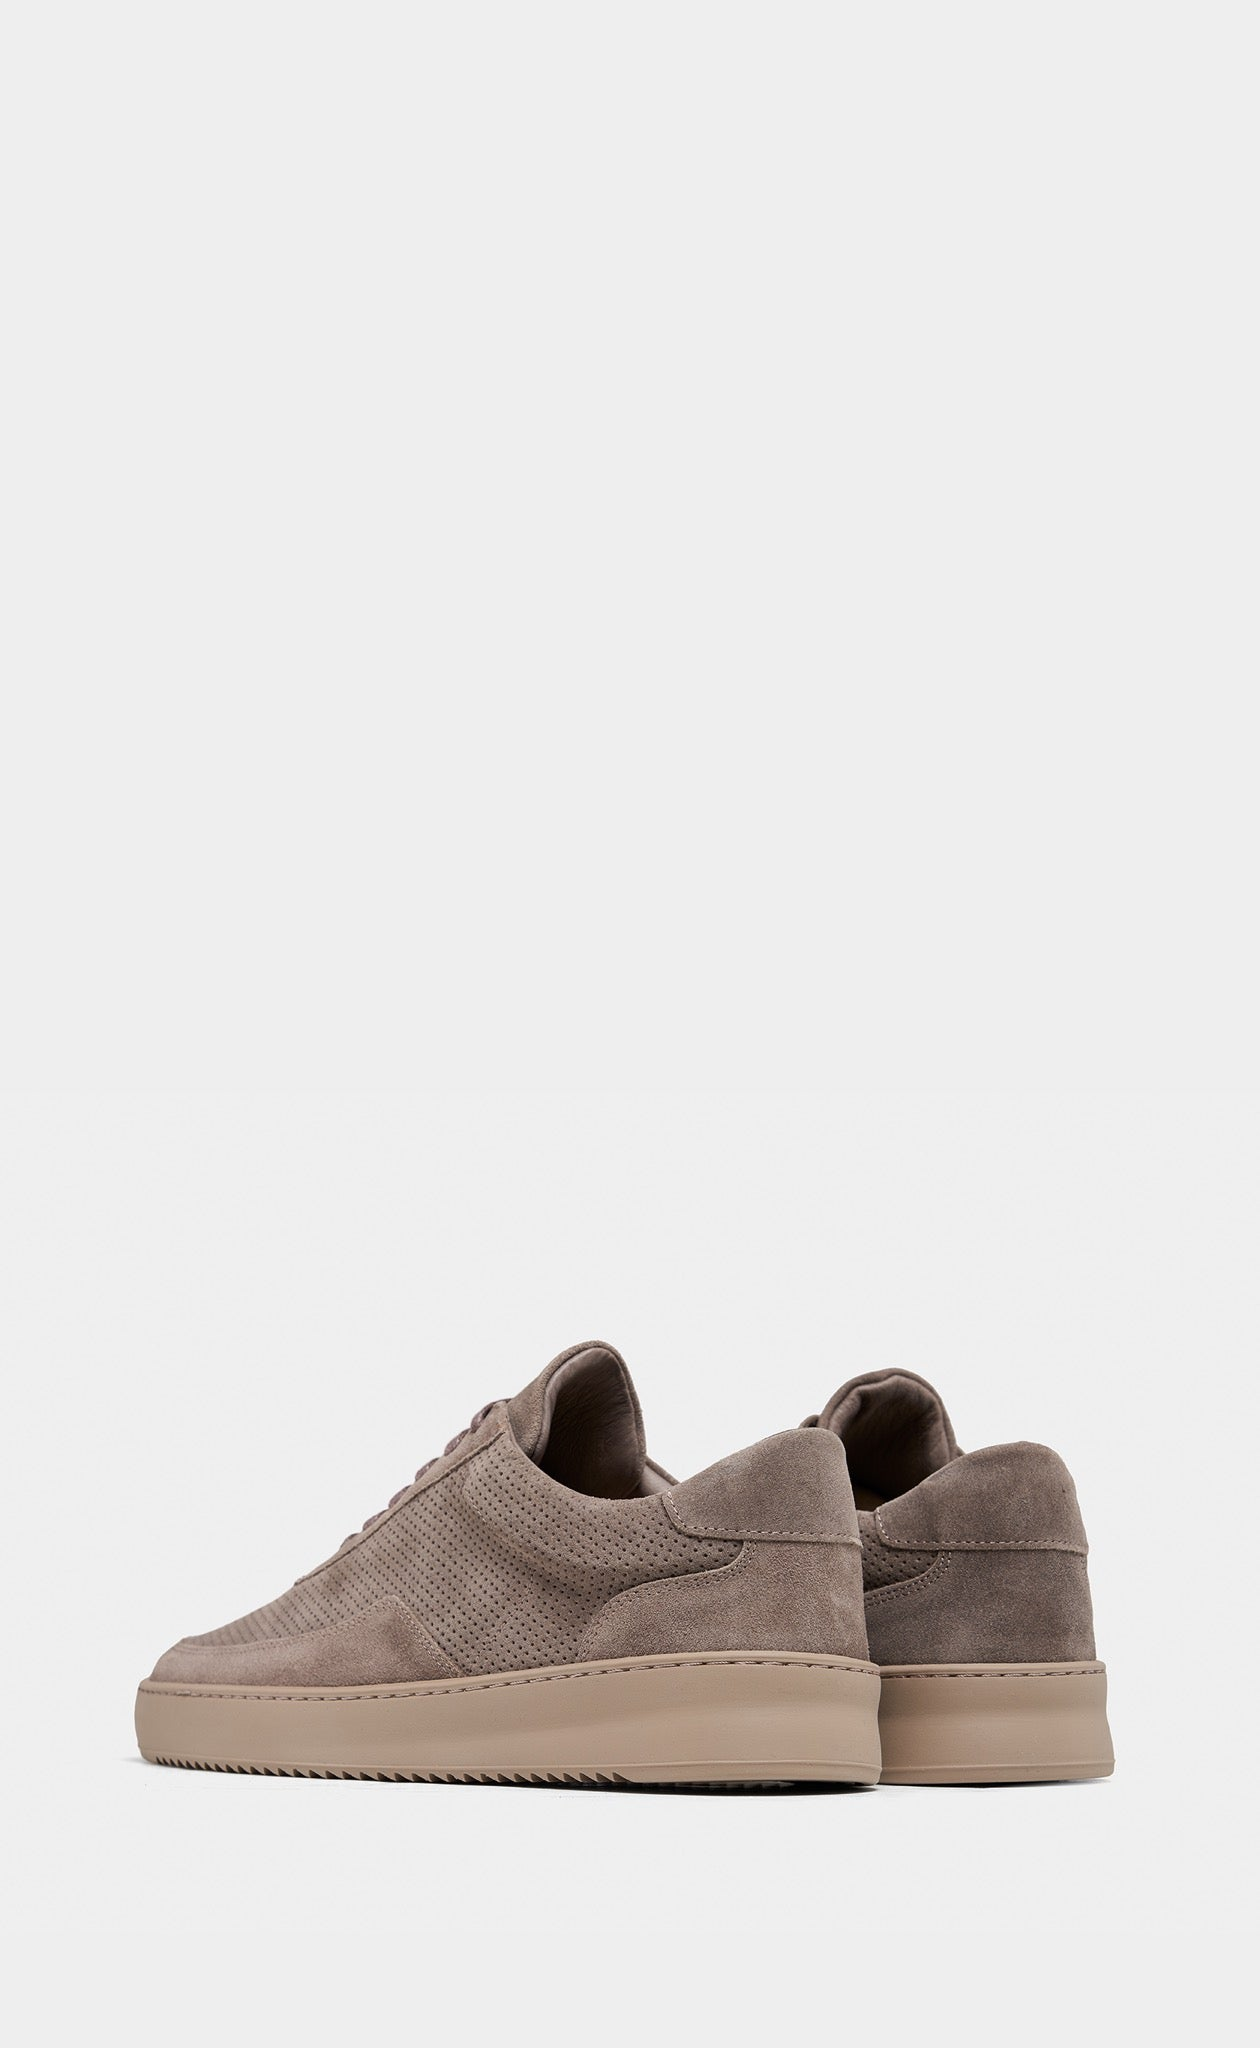 Low Mondo Ripple Suede Perforated Taupe